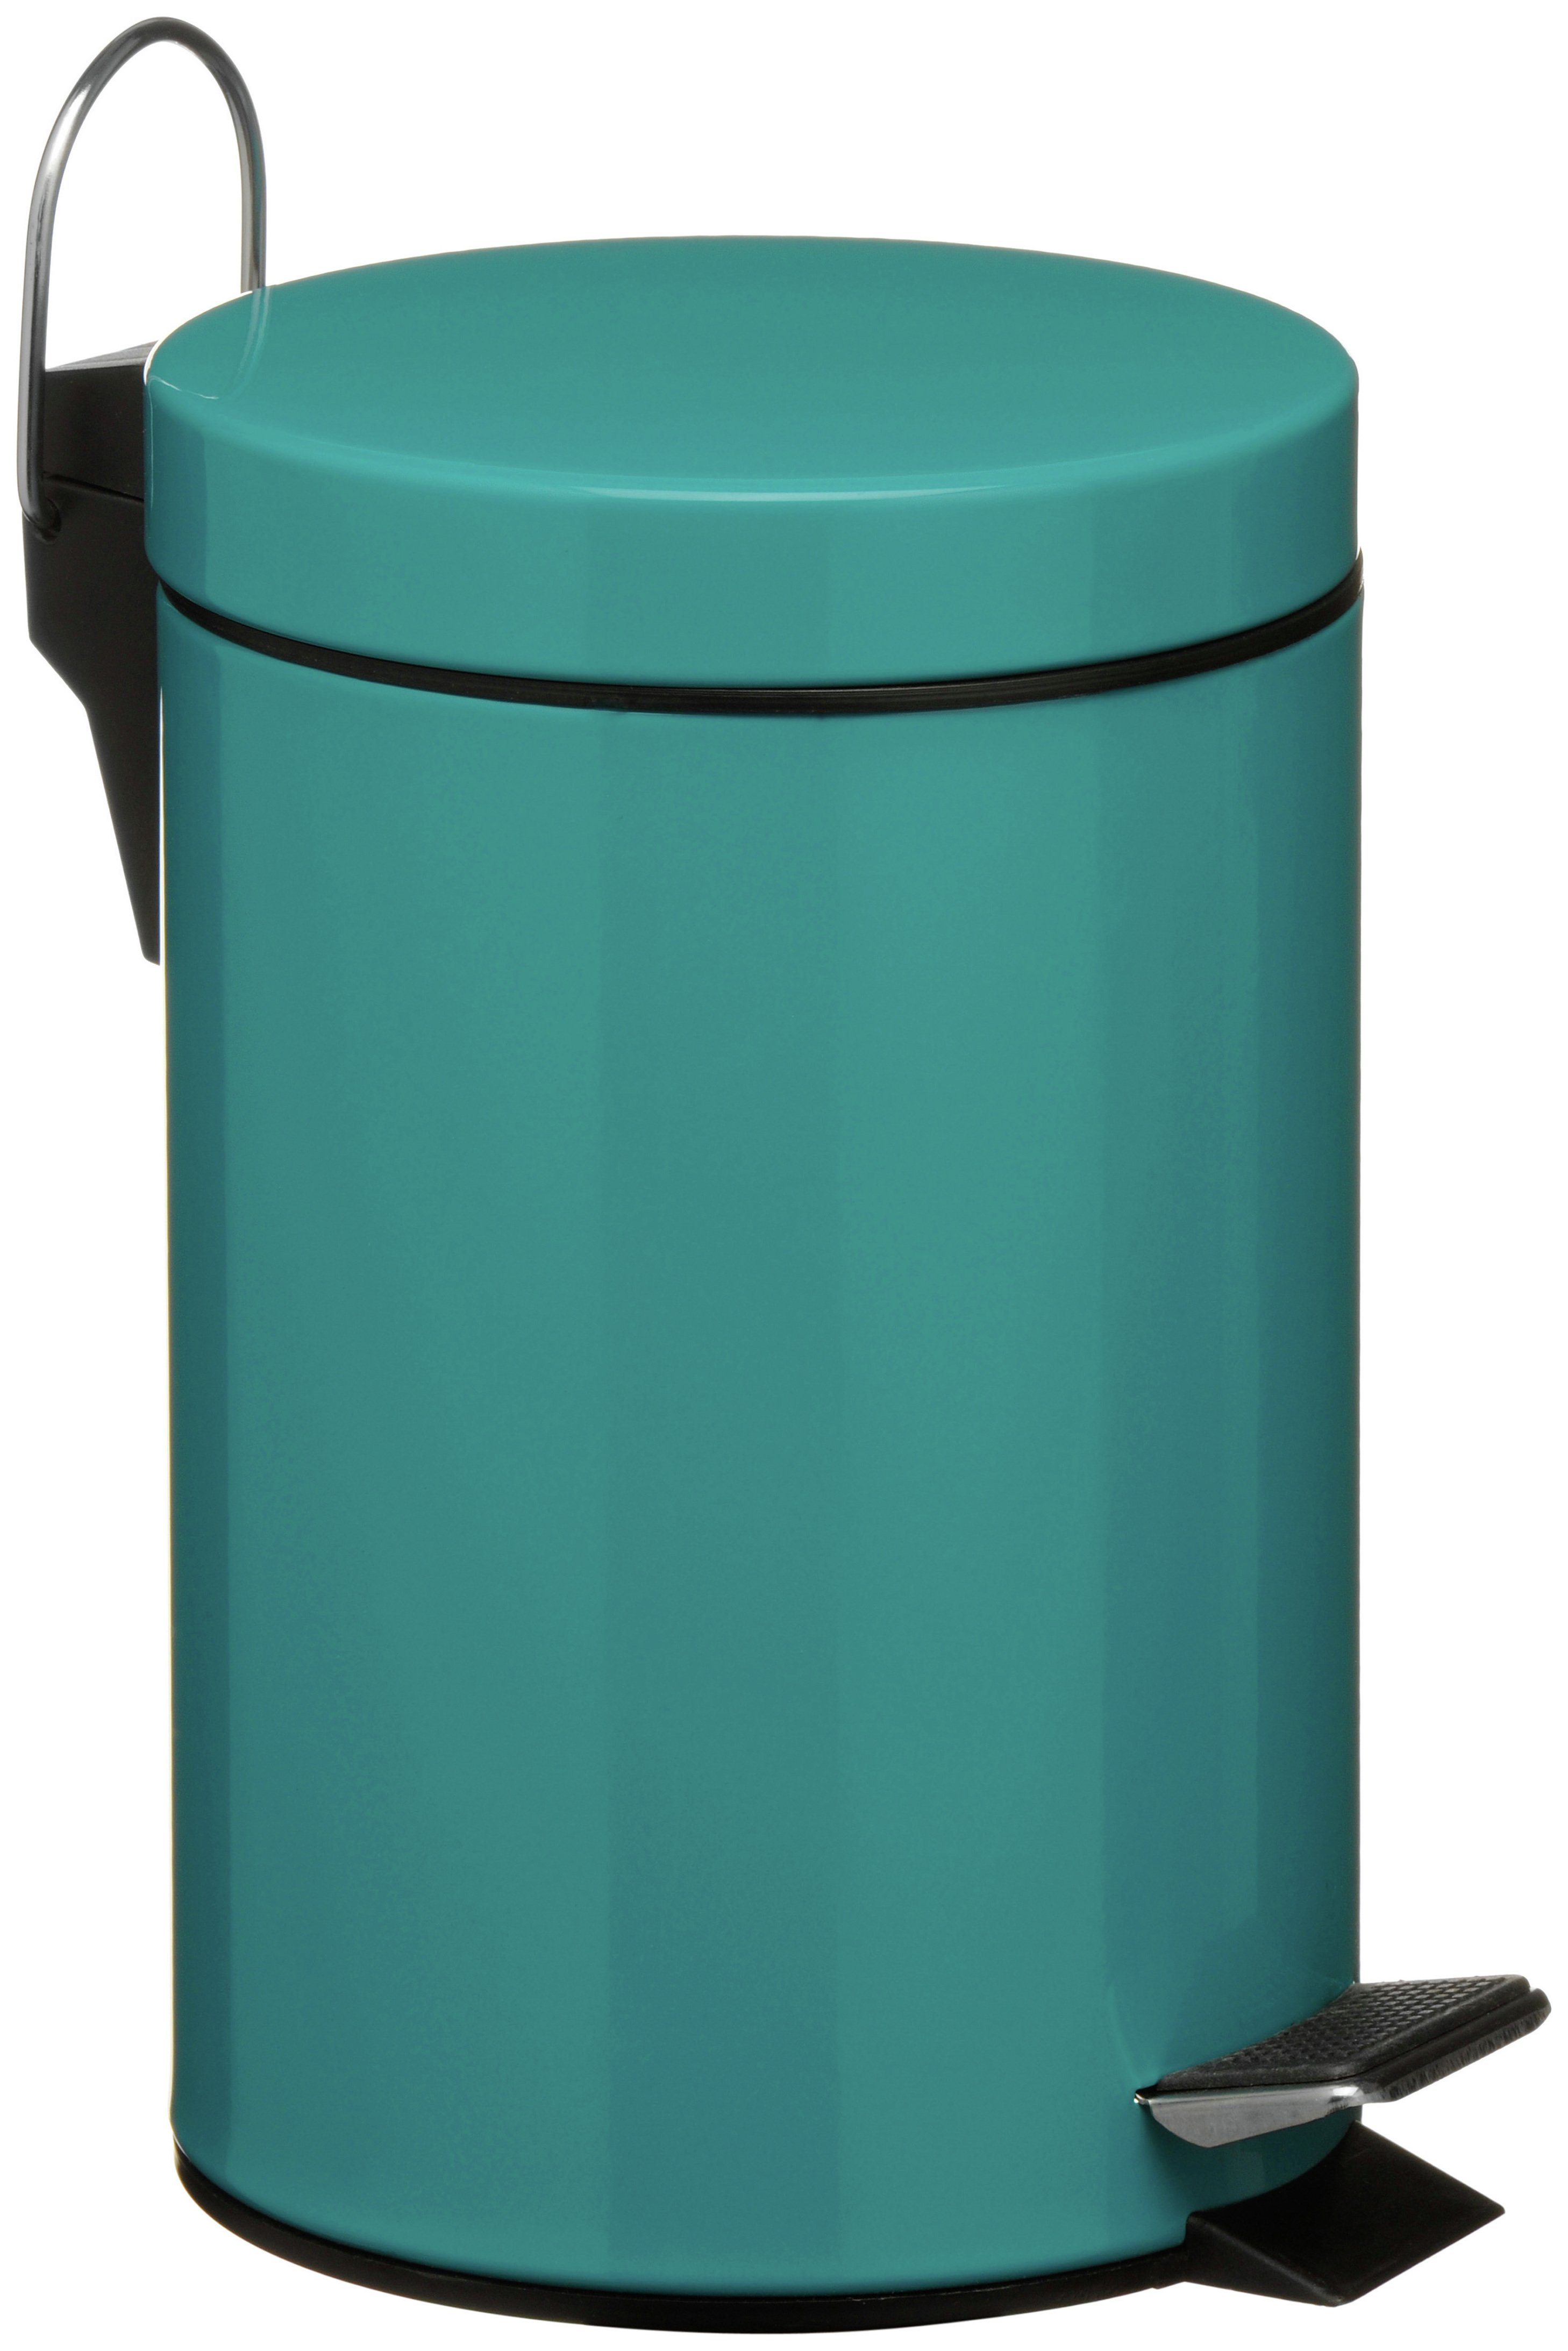 3 Litre Pedal Bin with Plastic inner - Turquoise.